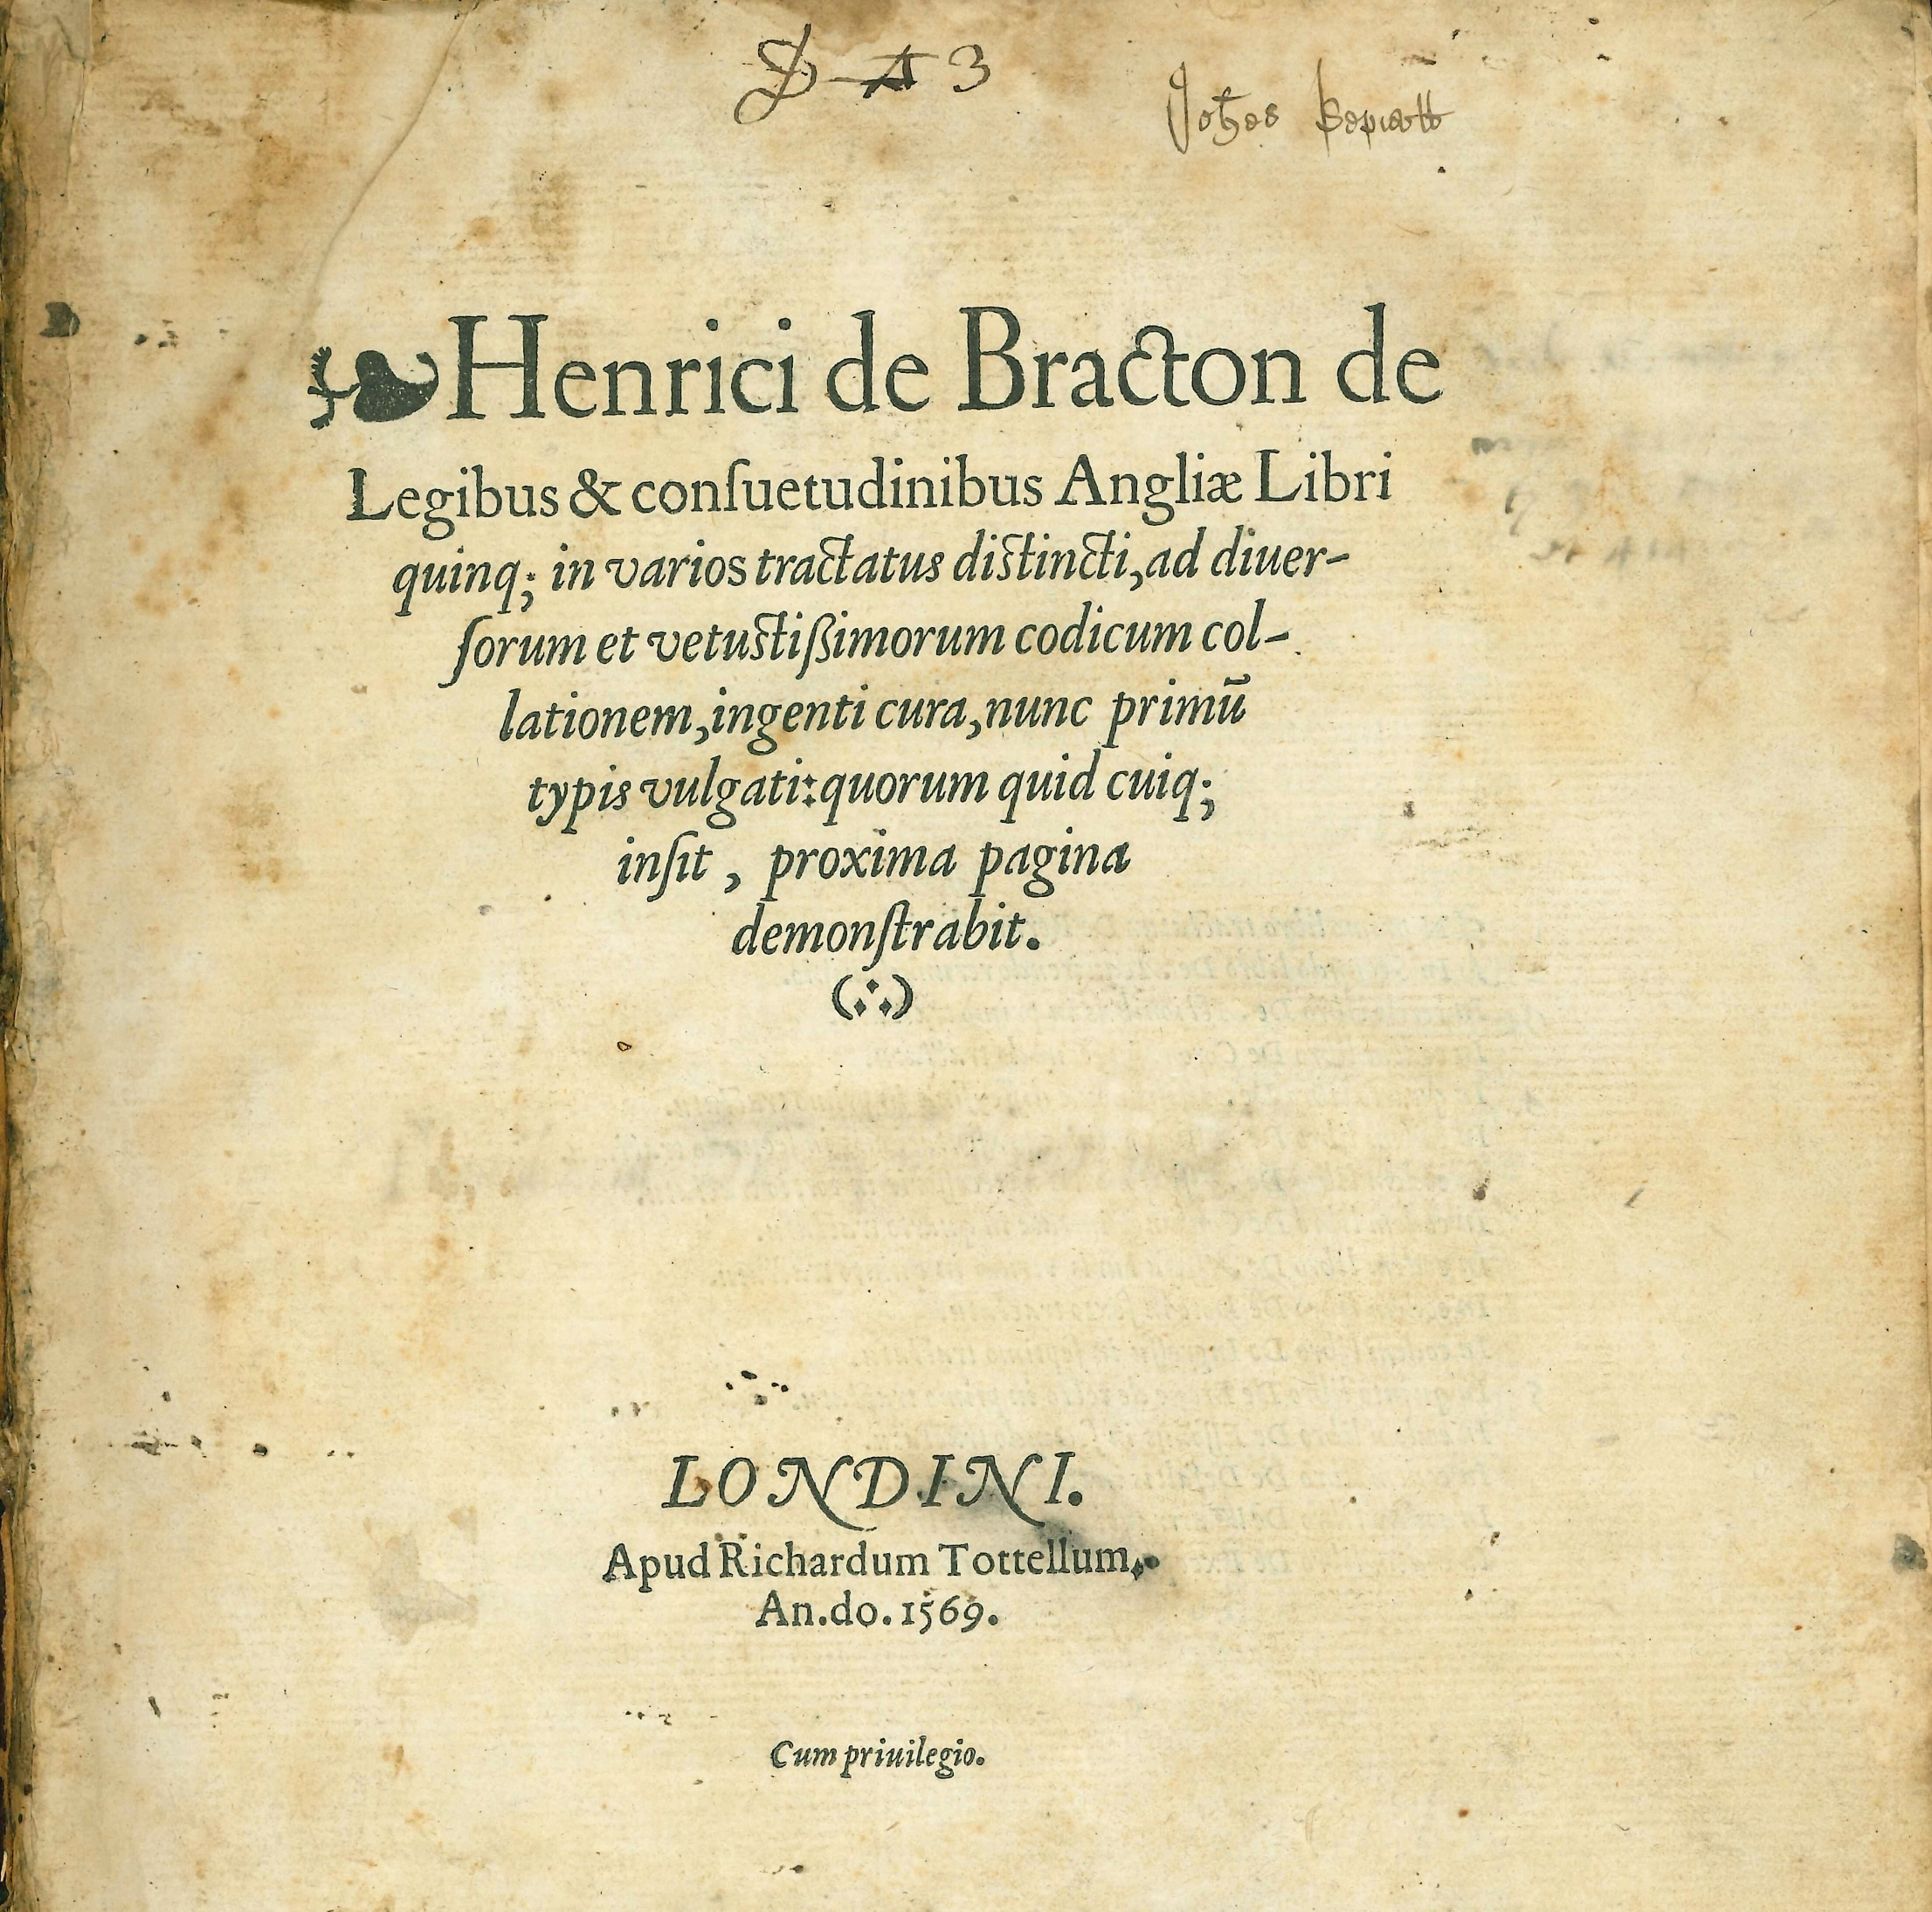 Photograph of historic legal document